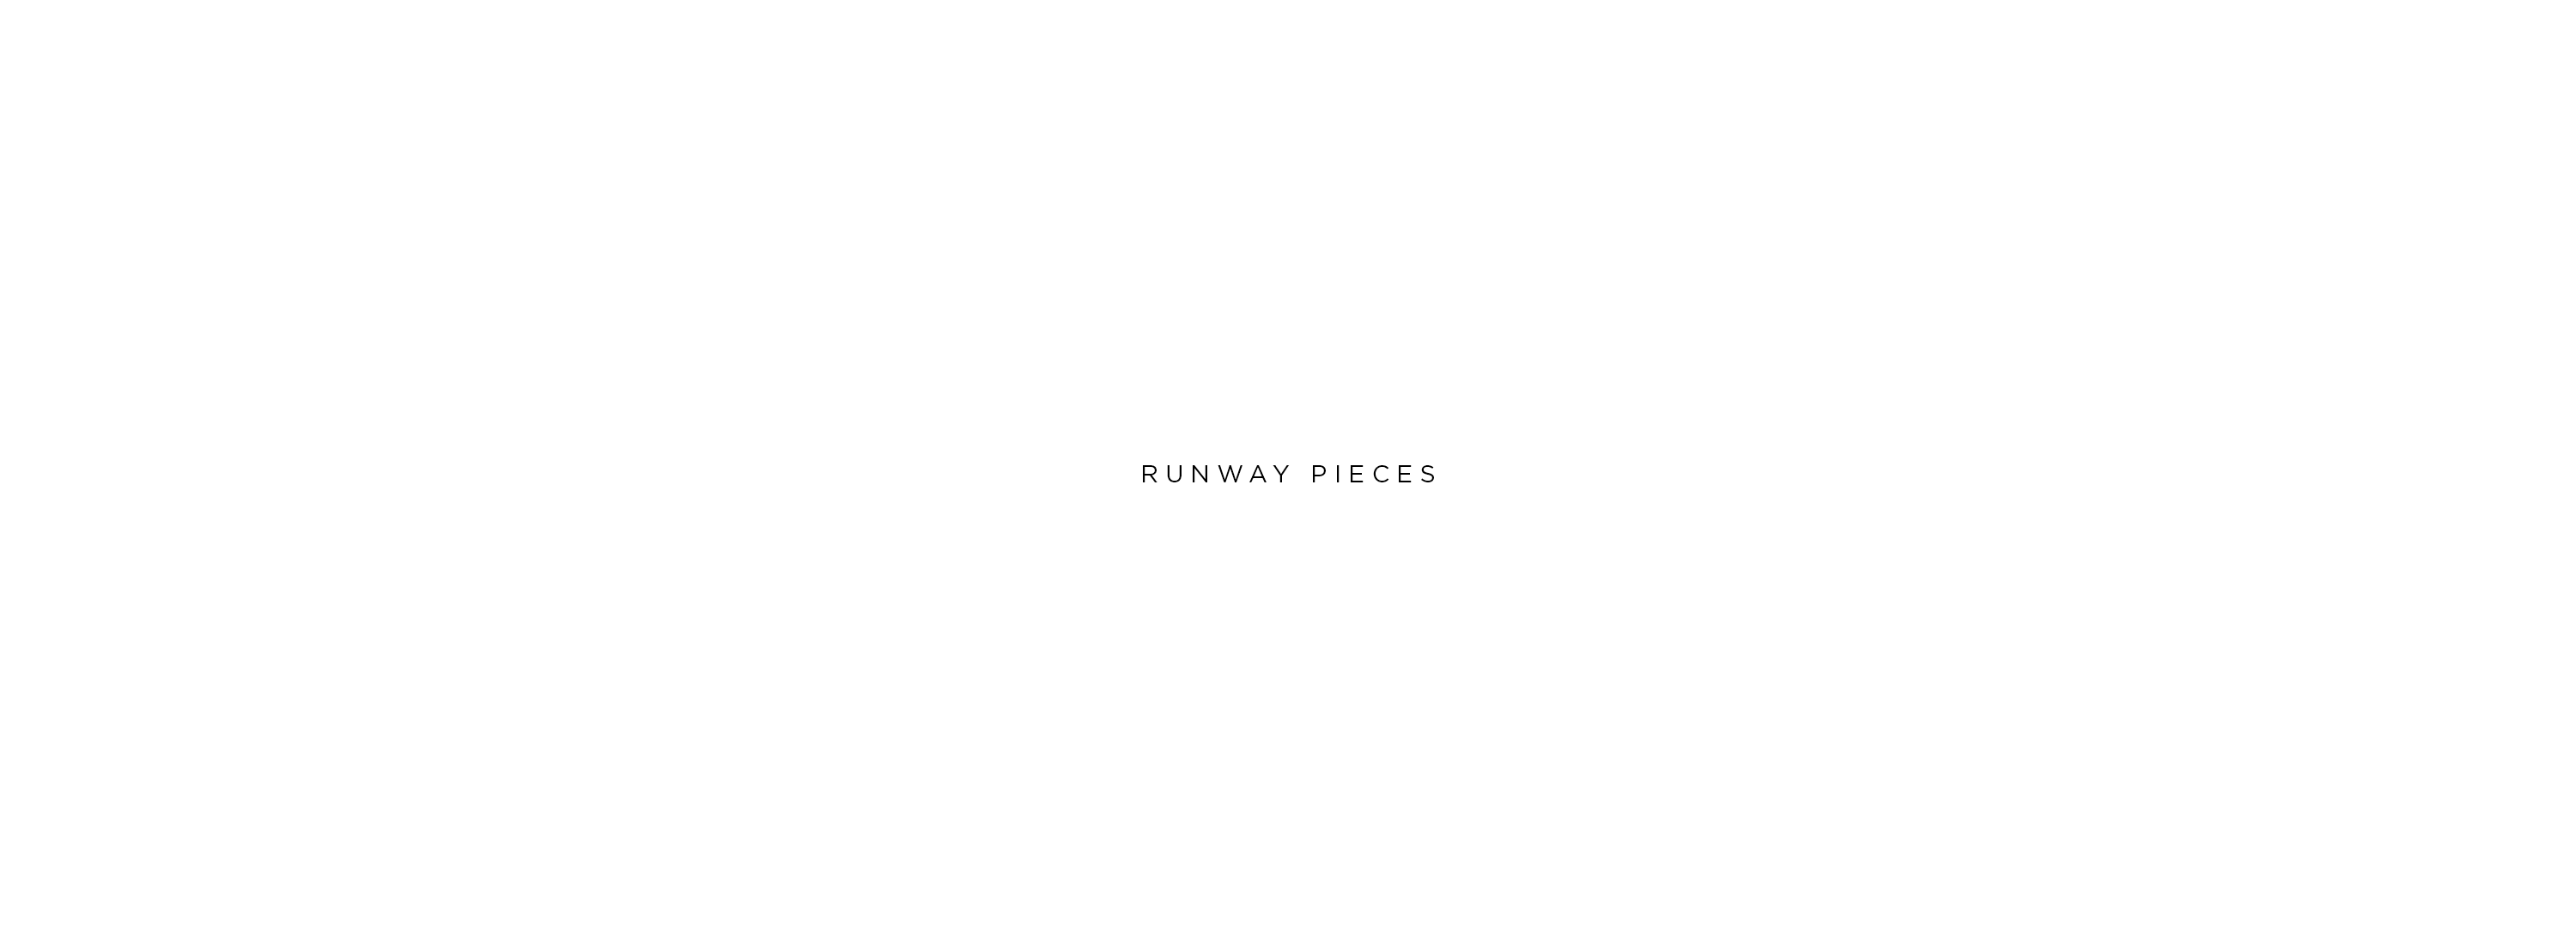 Runway pieces